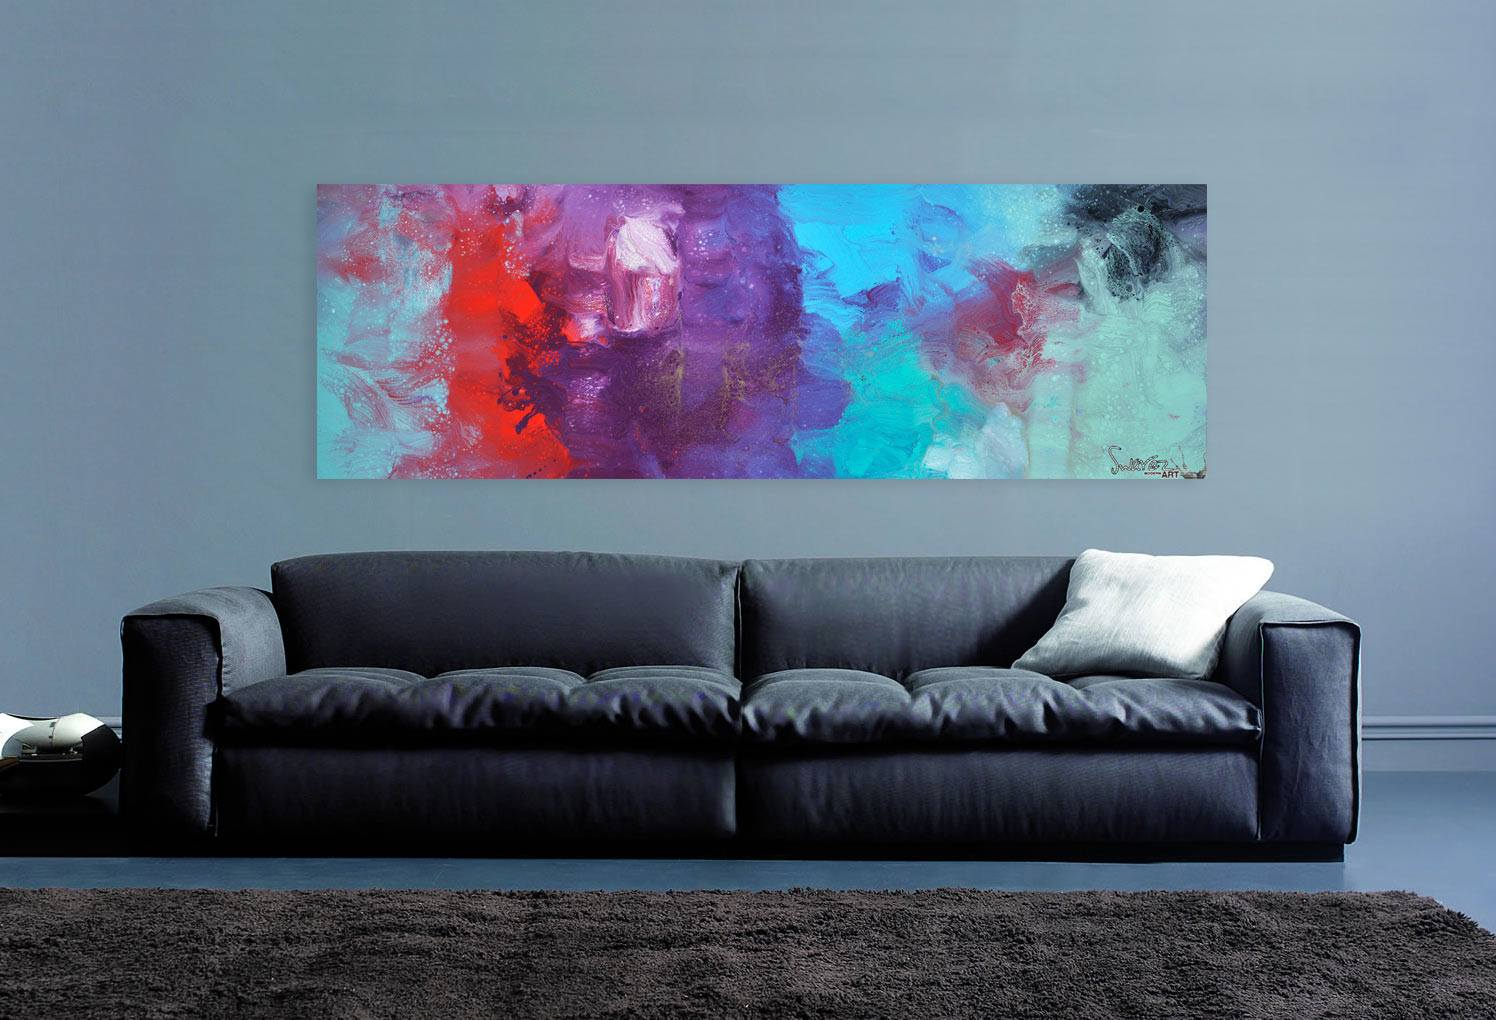 above sofa artwork leather sofas in dallas tx turquoise abstract art featuring purple red and blue